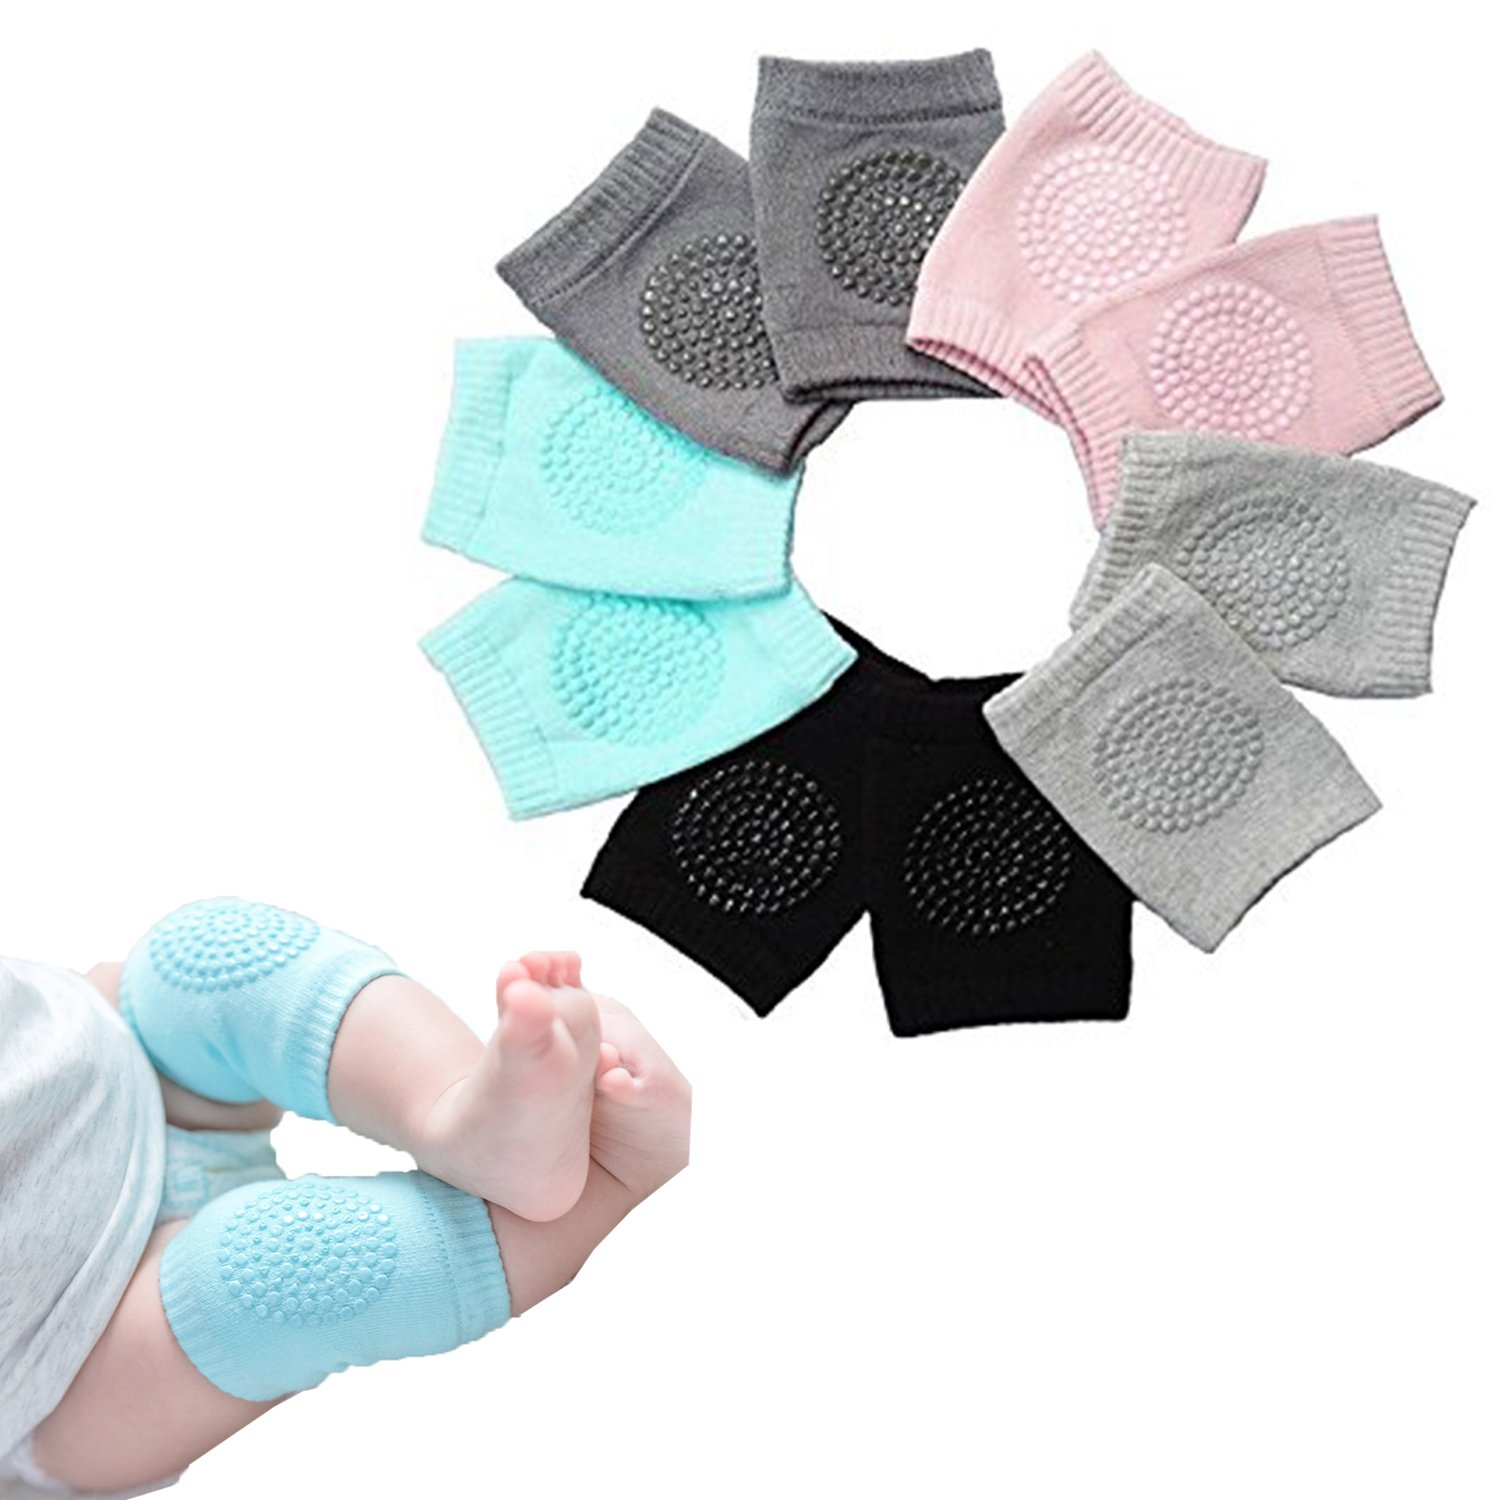 Baby Crawling Anti-Slip Knee, Unisex Baby Toddlers Kneepads 5 Pairs Bosoner baby 1